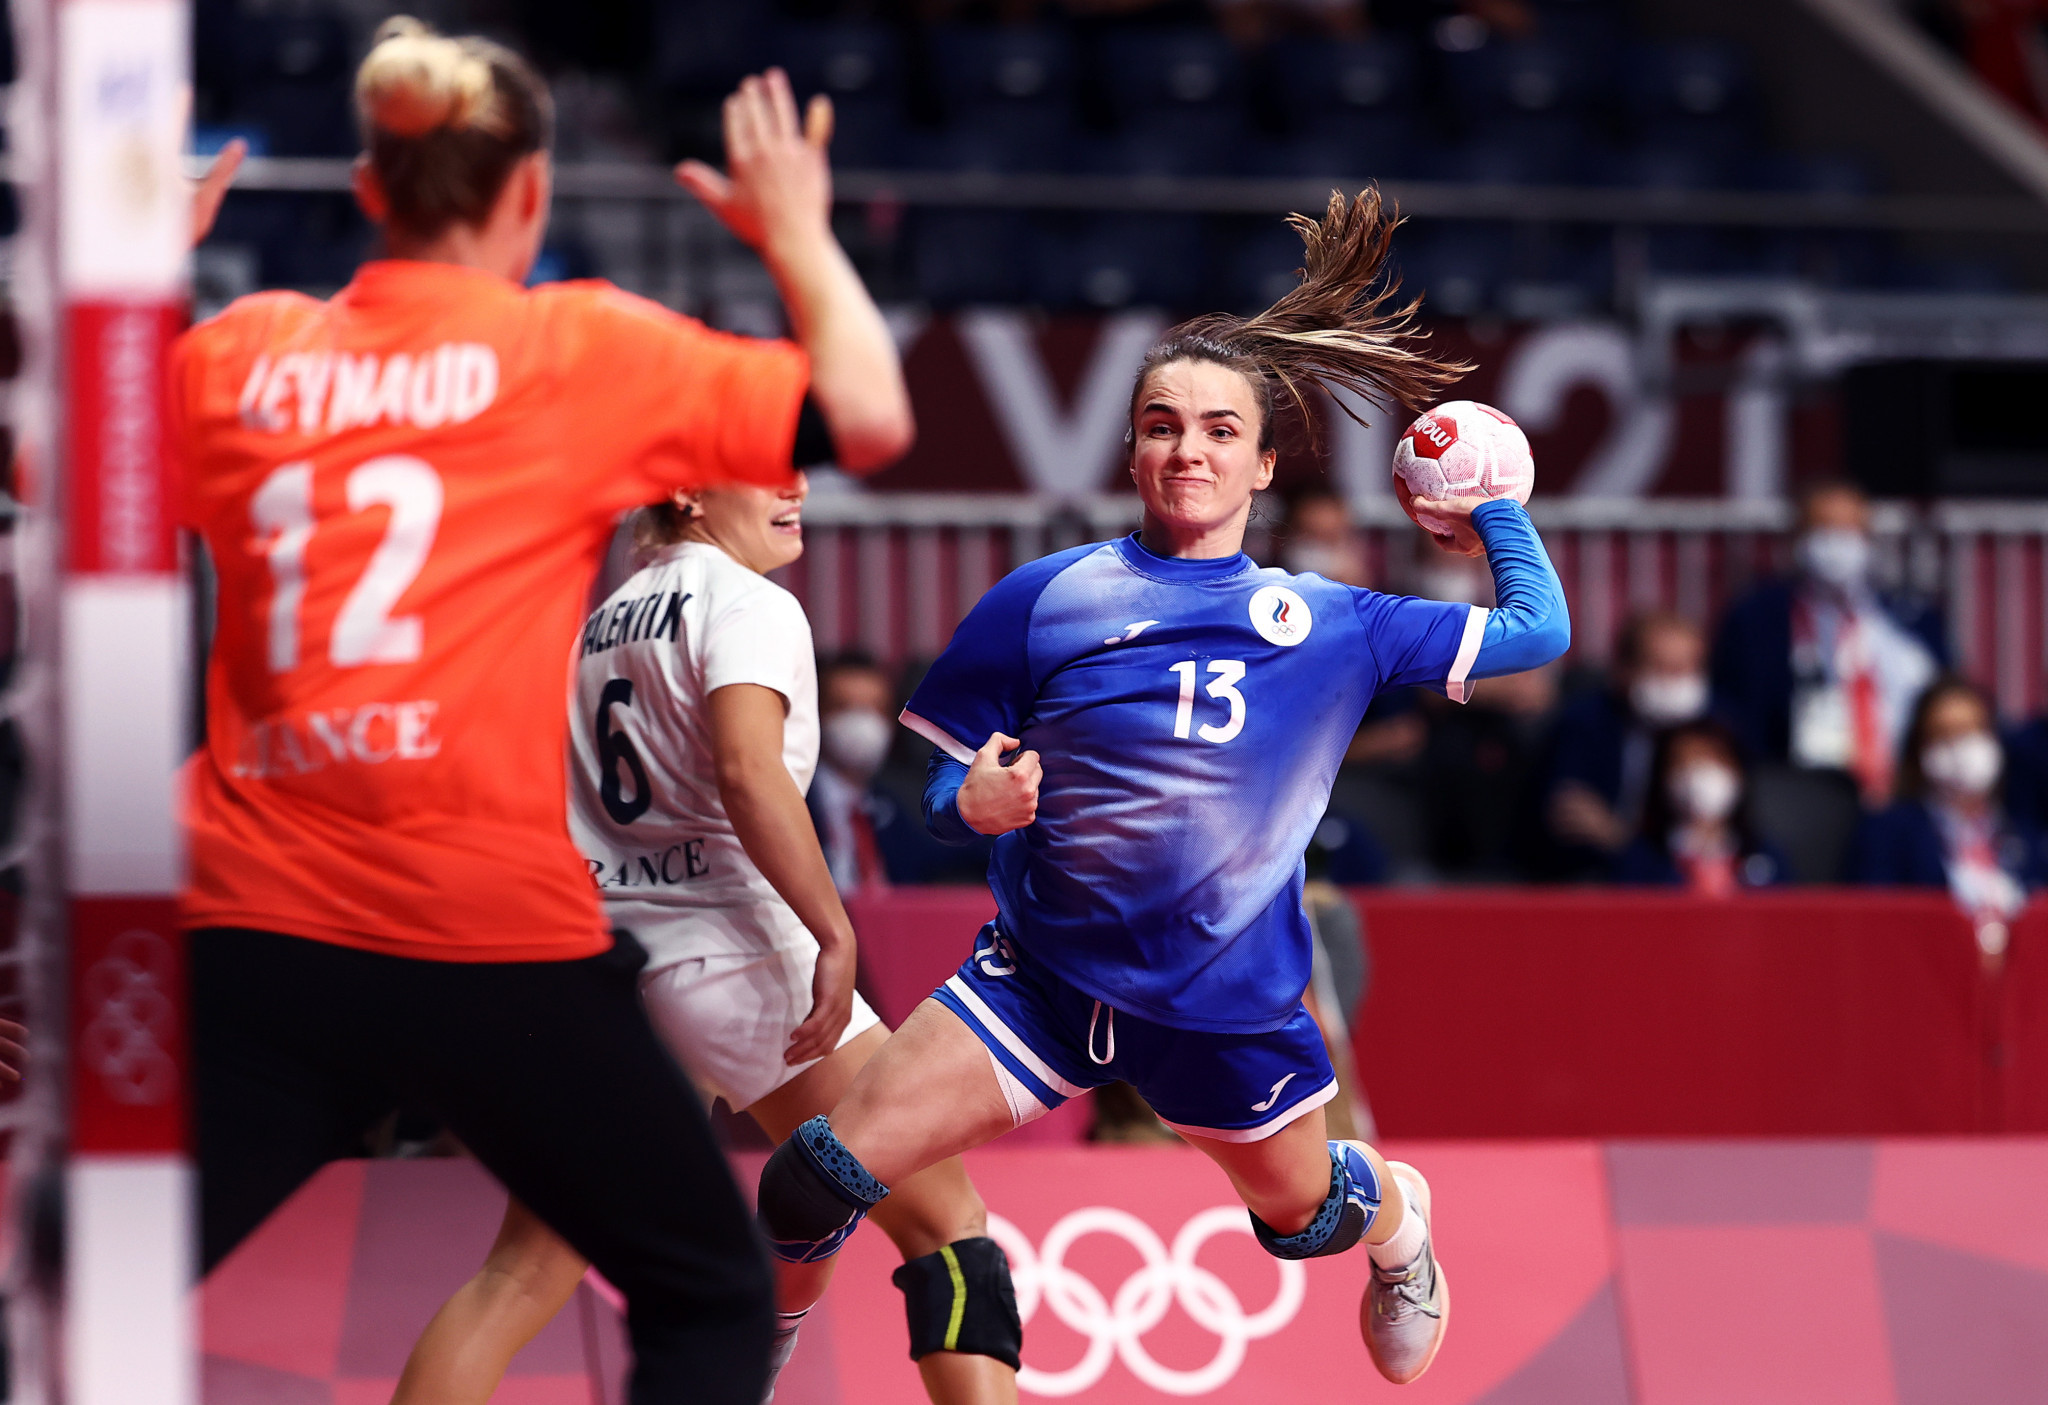 Right back Anna Vyakhireva was named the Most Valuable Player of the Tokyo 2020 Olympics ©Getty Images